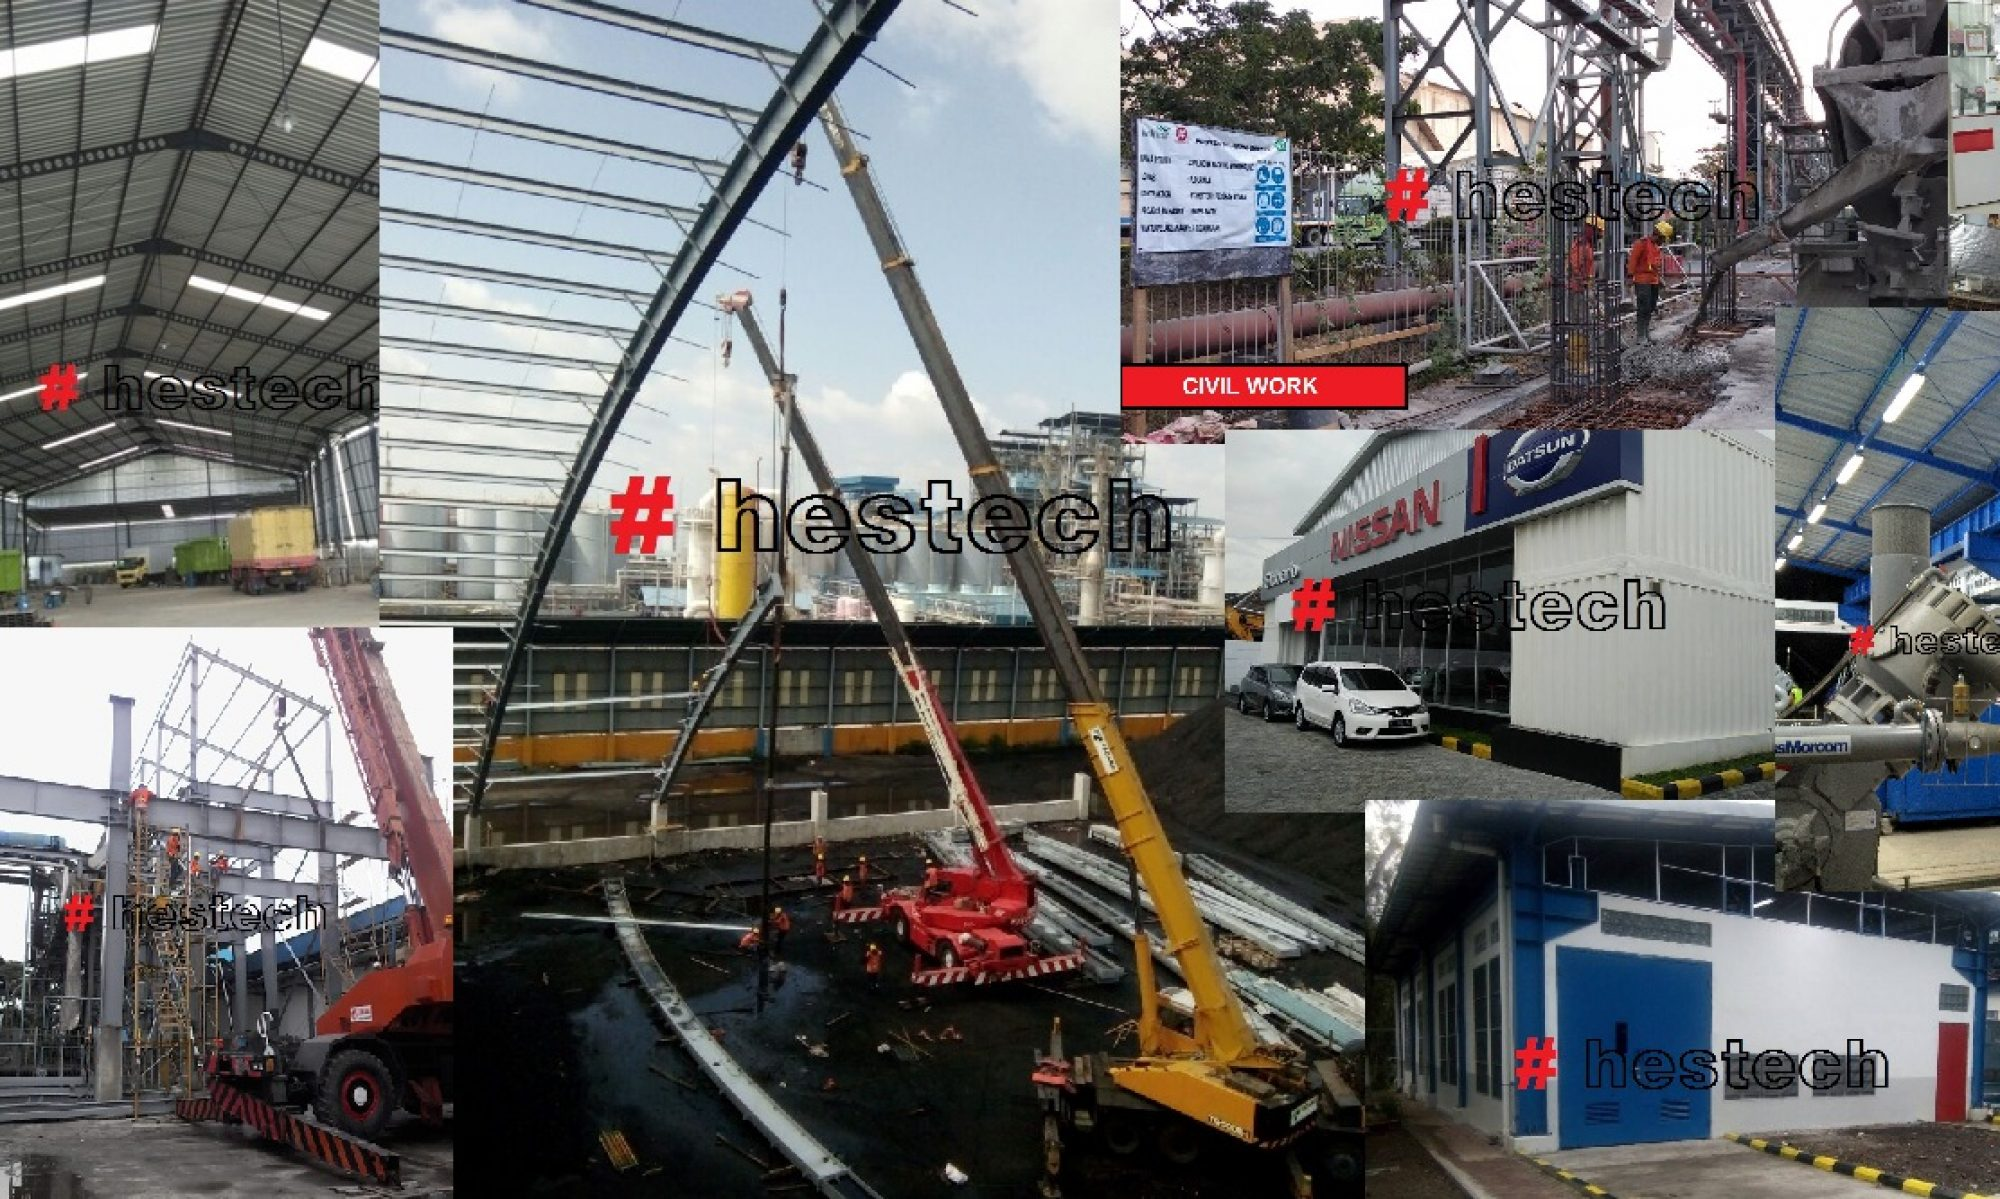 PT Hestech Persada Utama | Engineering Civil & Steel Structure Contractor